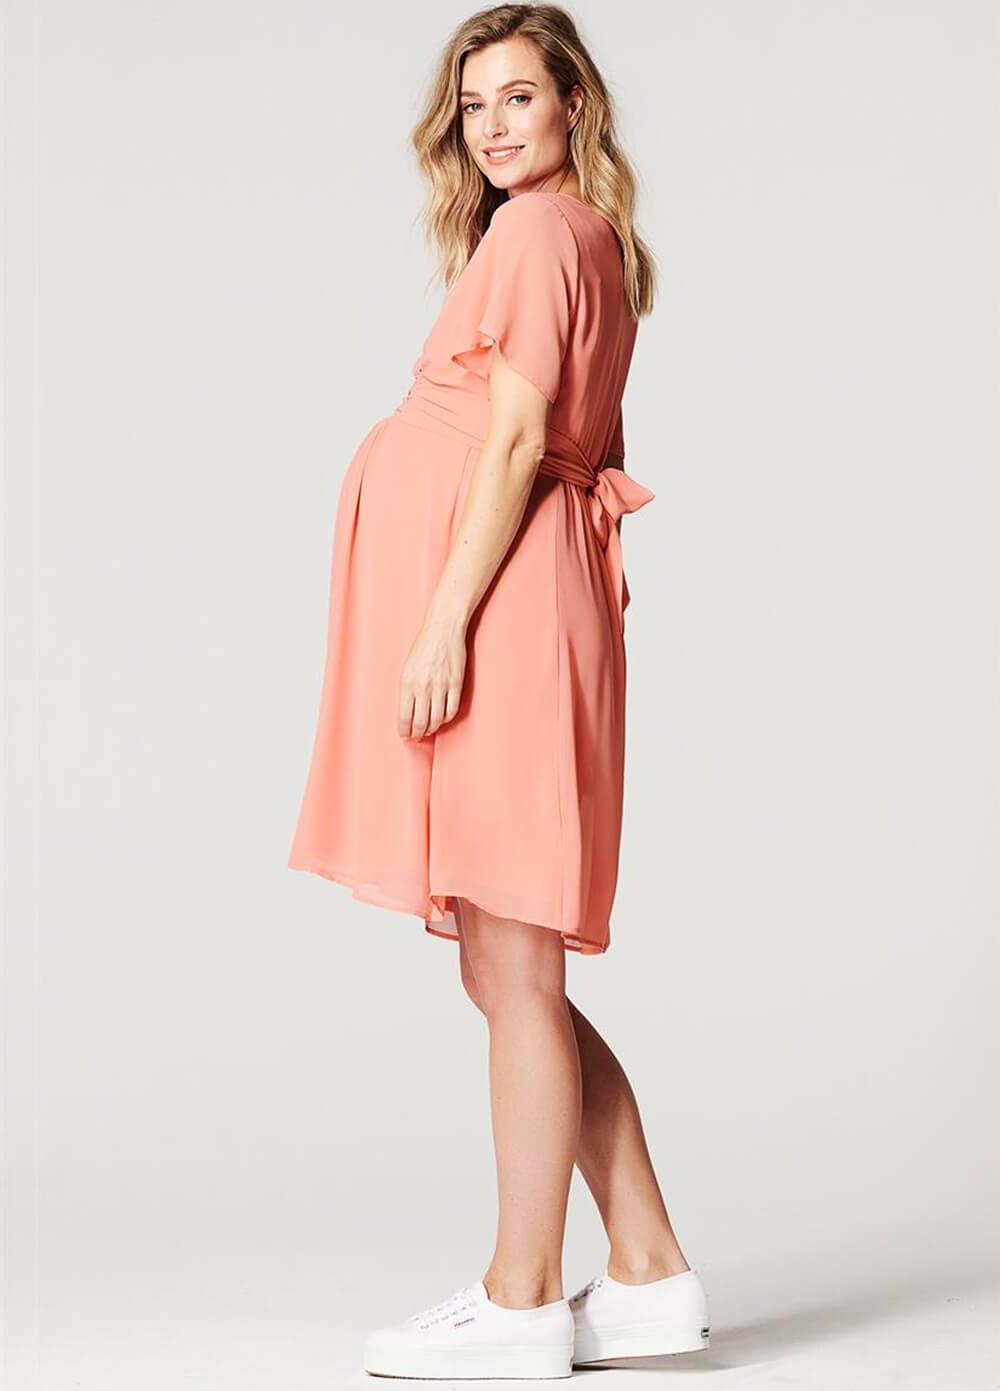 Noppies - Lantana Blossom Chiffon Maternity Dress | Queen Bee